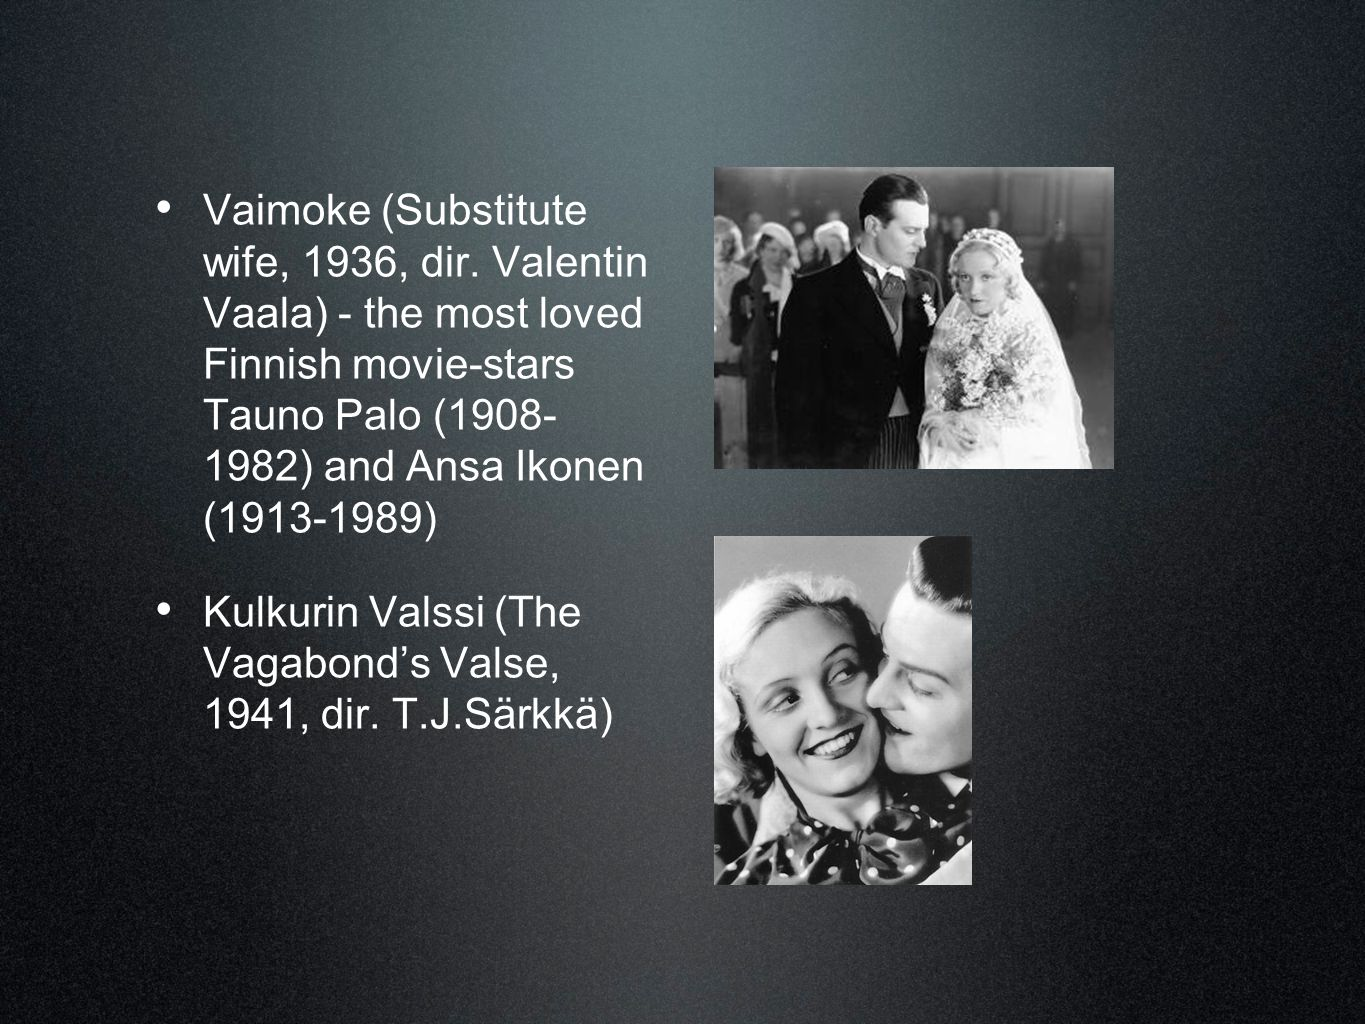 • Vaimoke (Substitute wife, 1936, dir. Valentin Vaala) - the most loved Finnish movie-stars Tauno Palo (1908- 1982) and Ansa Ikonen (1913-1989) • Kulk